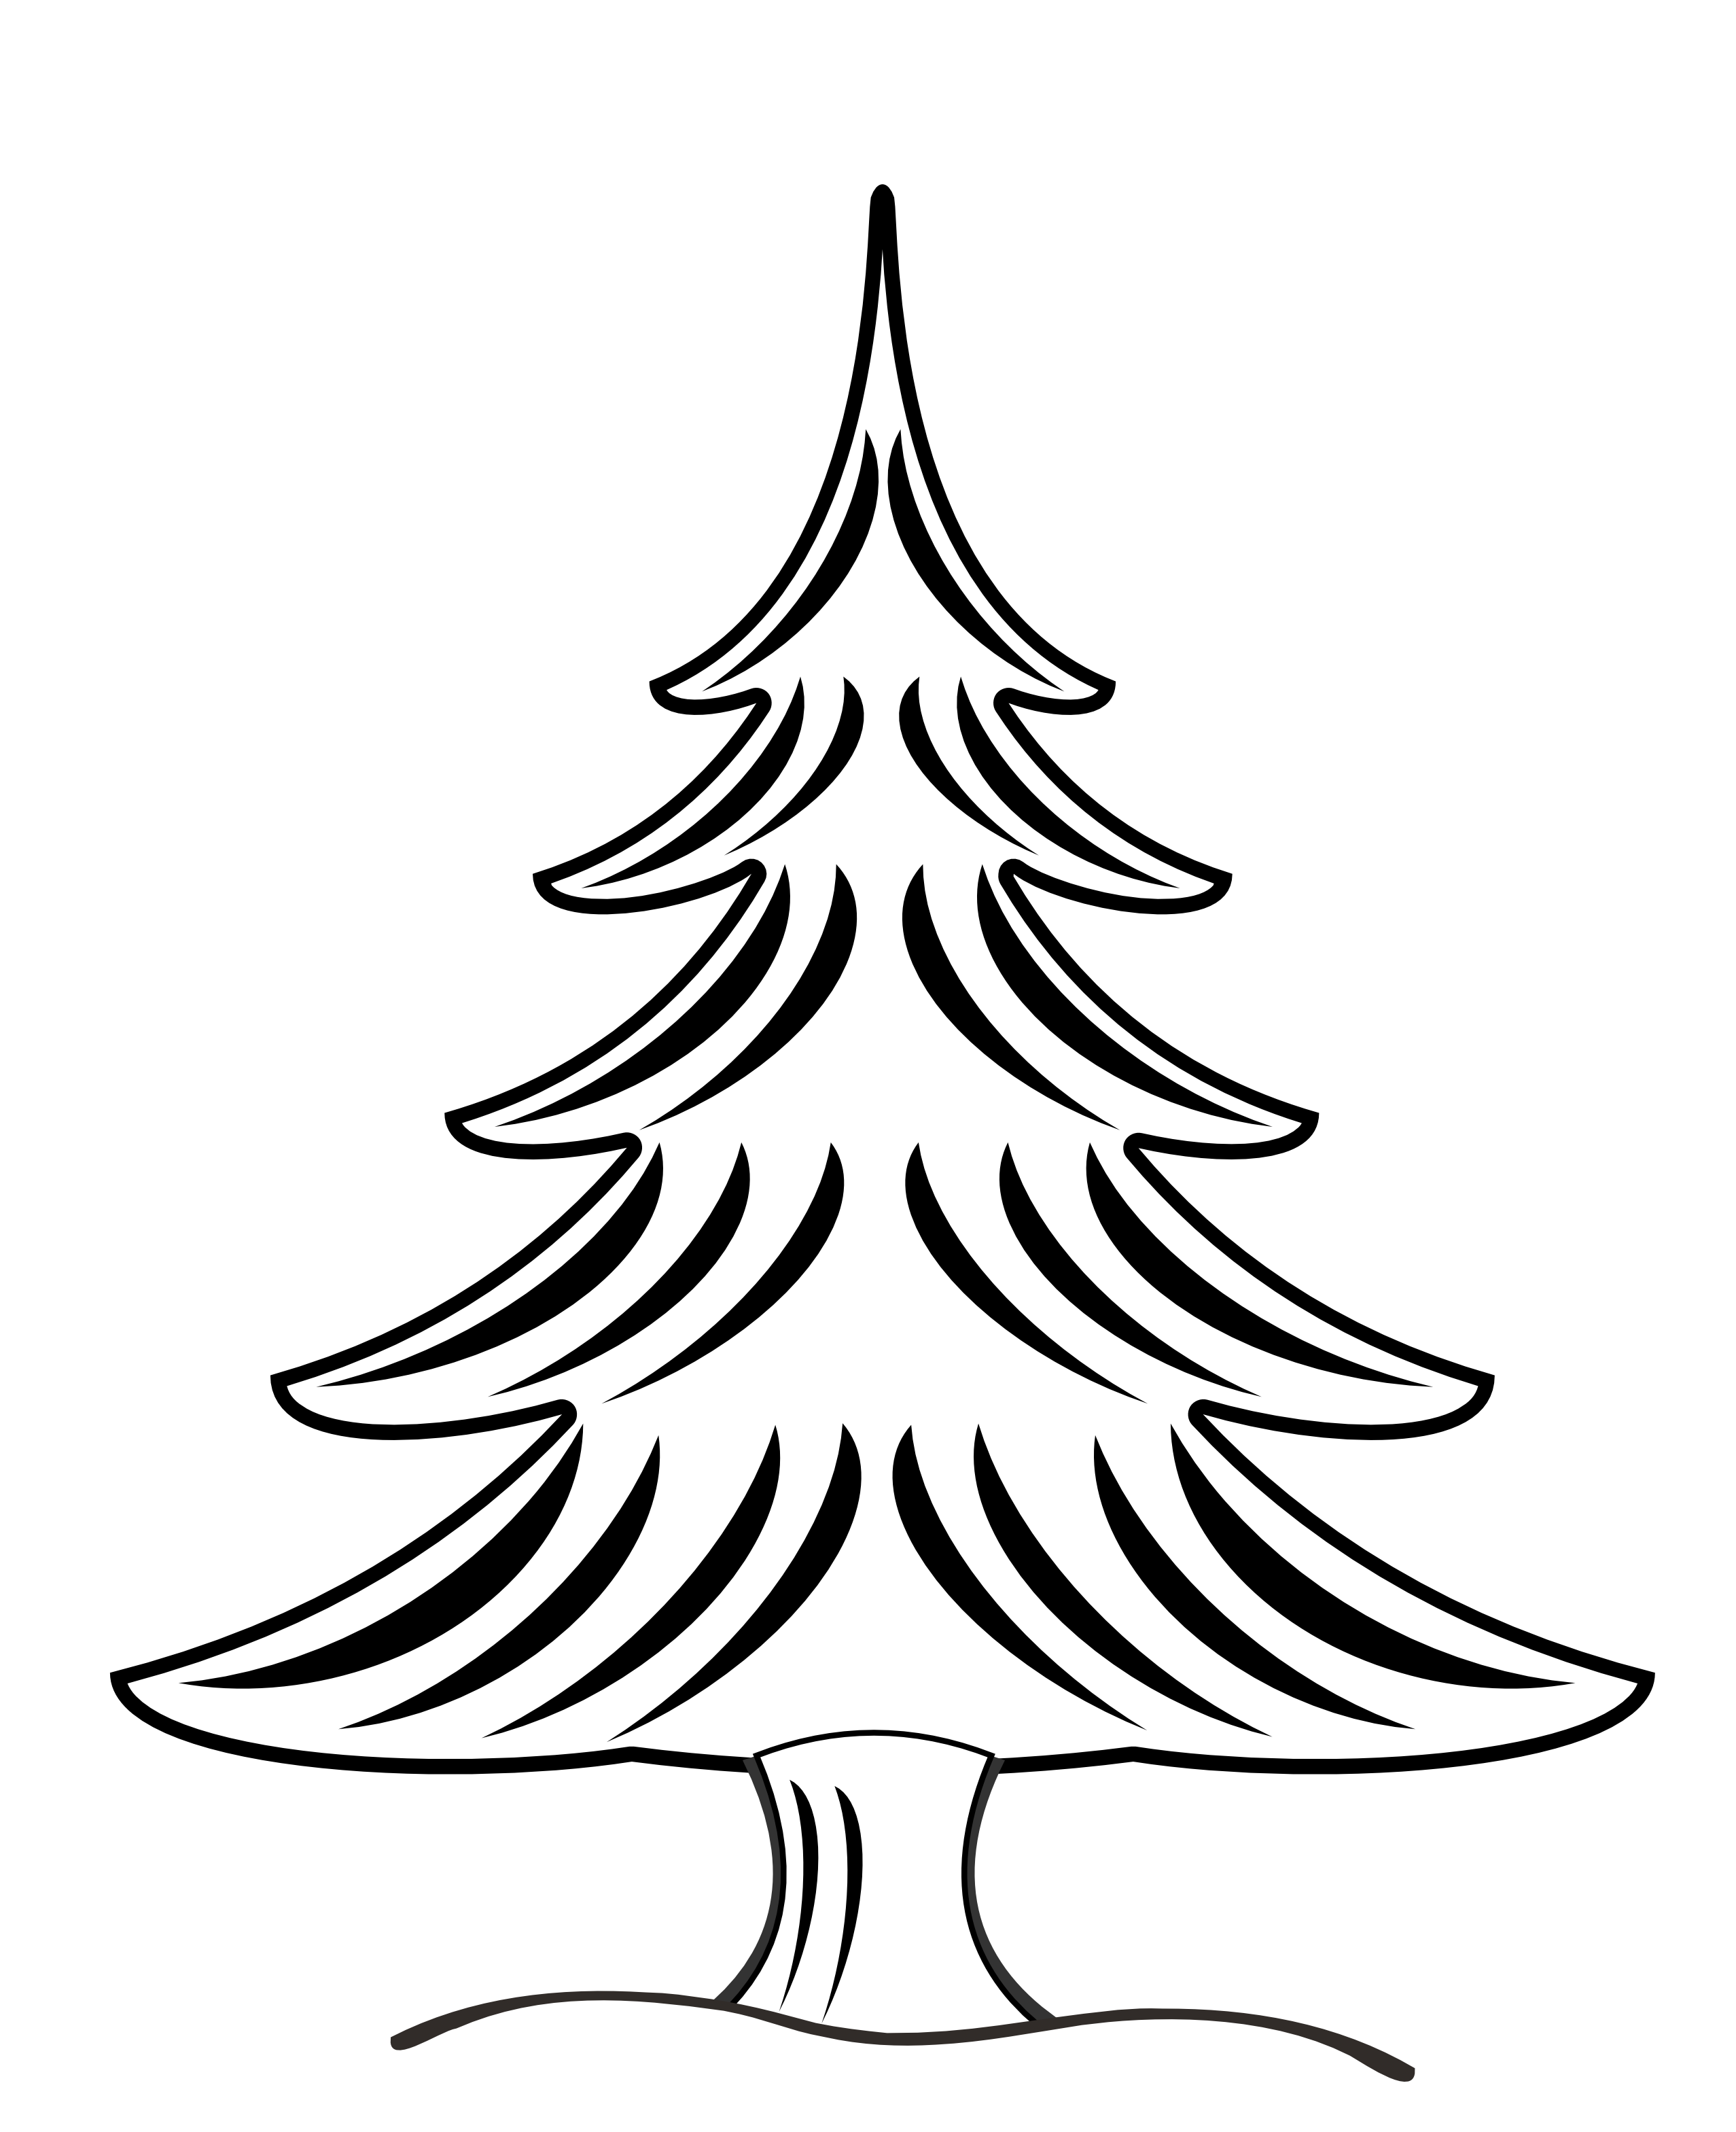 Christmas Tree Clipart Black And White Clipart Panda Free